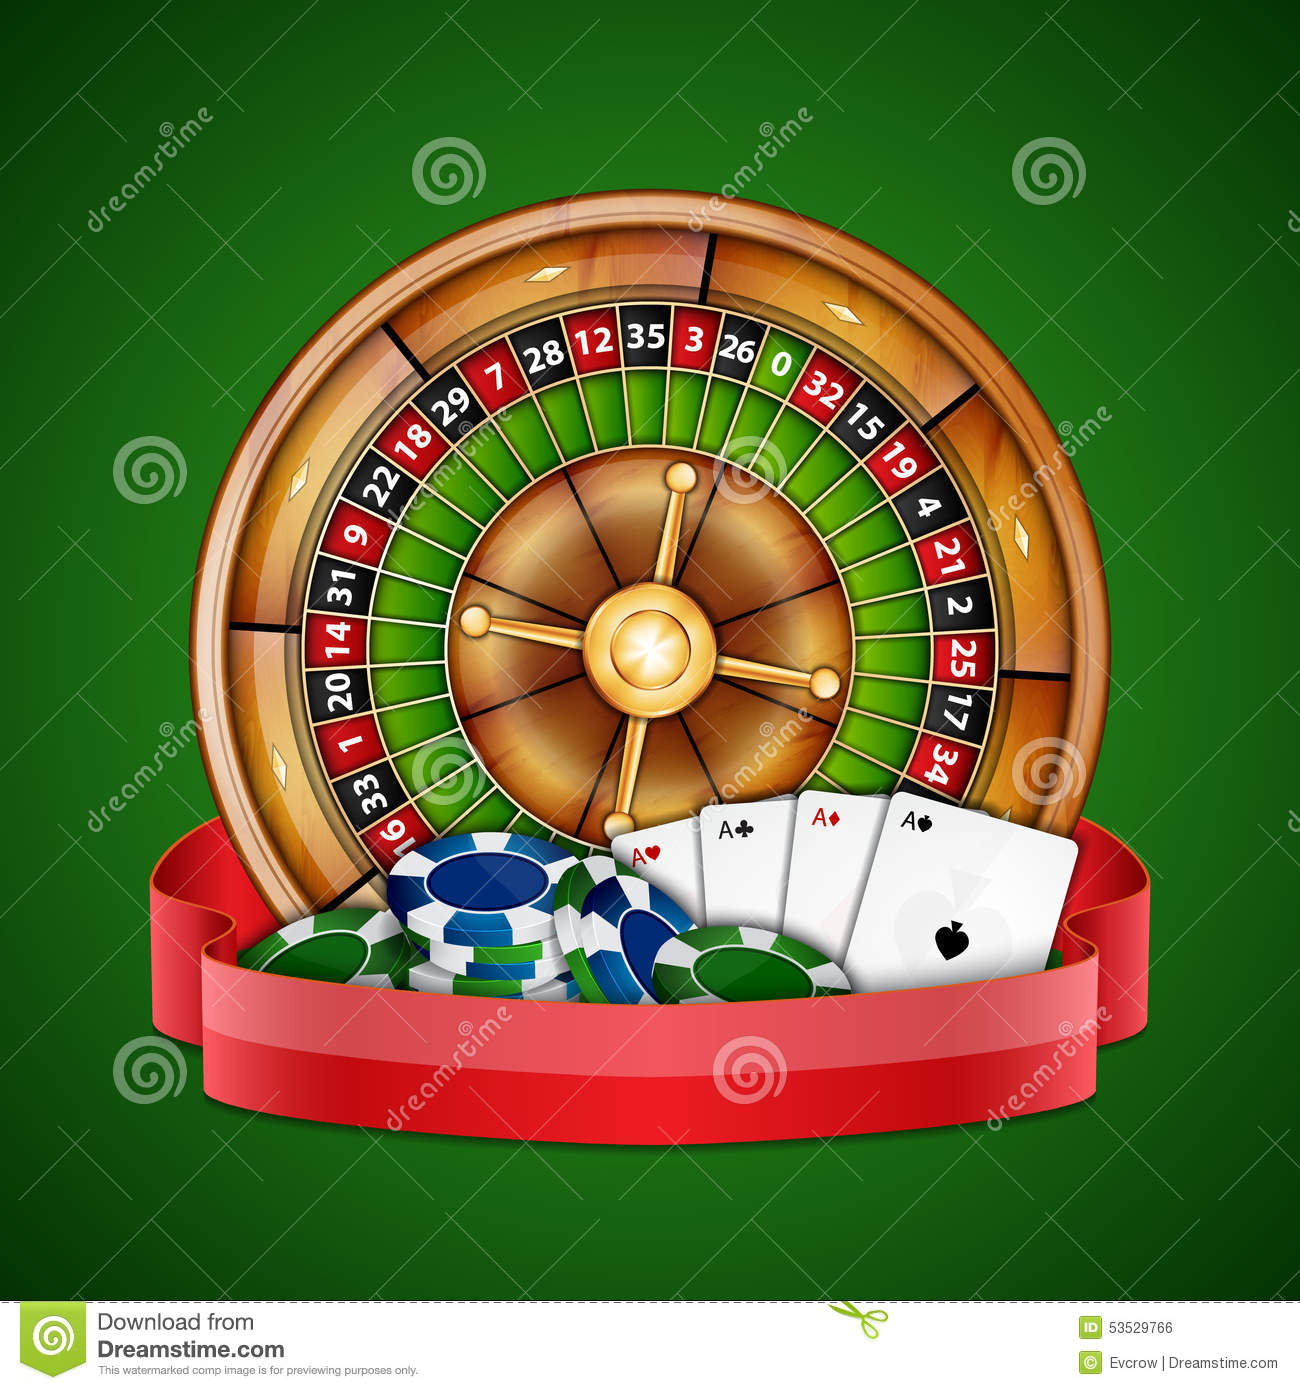 Card based roulette winstar